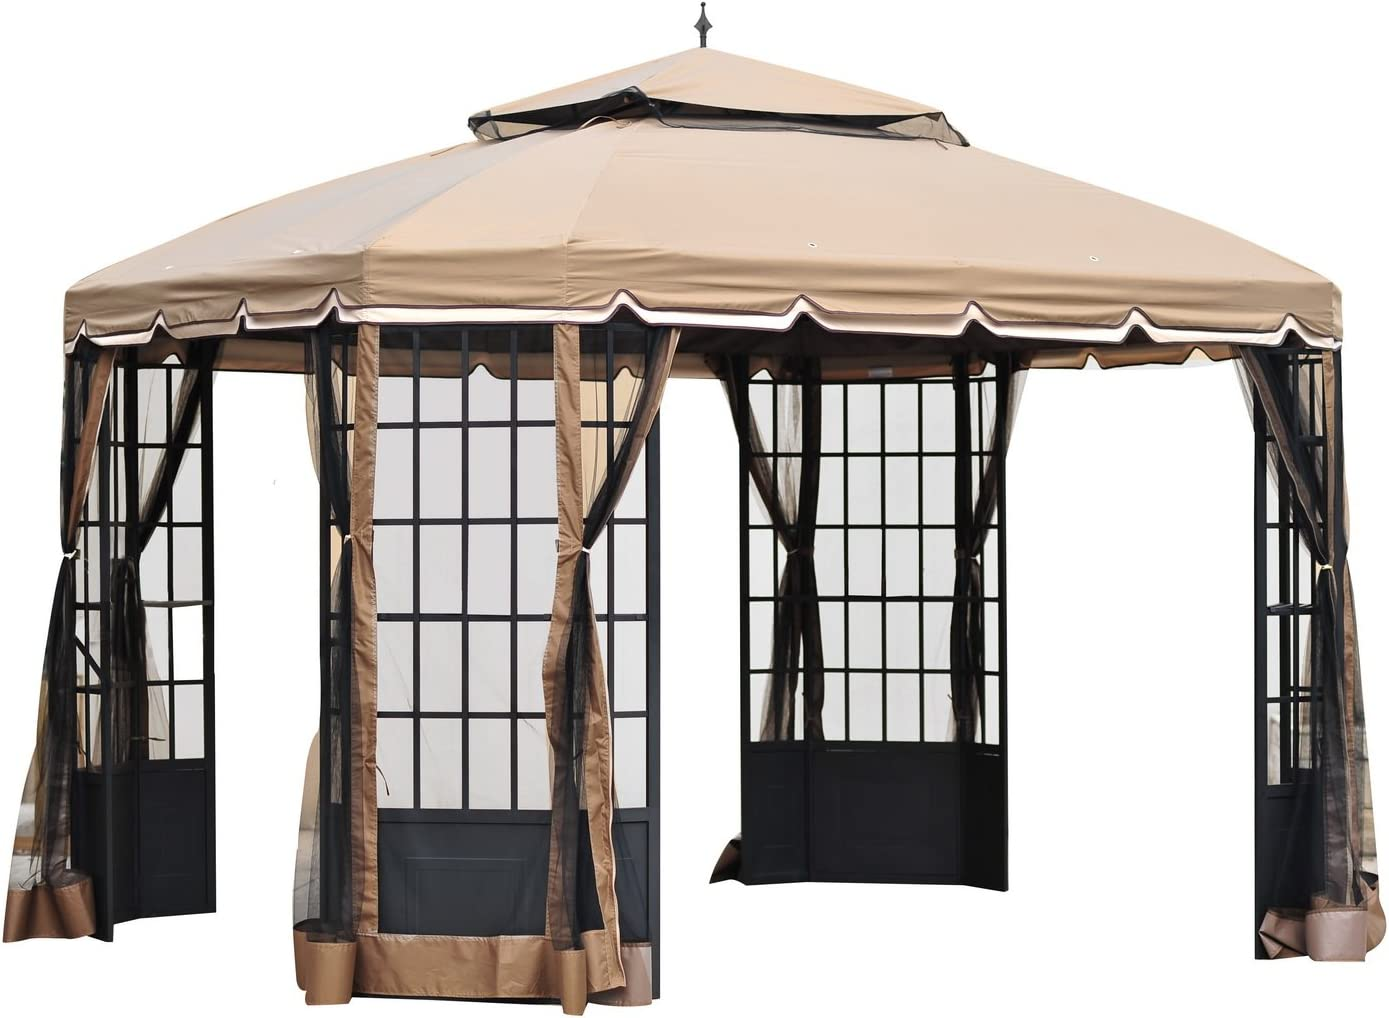 Sunjoy 110109159 Cambridge Gazebo toldo de Repuesto Set: Amazon.es: Jardín